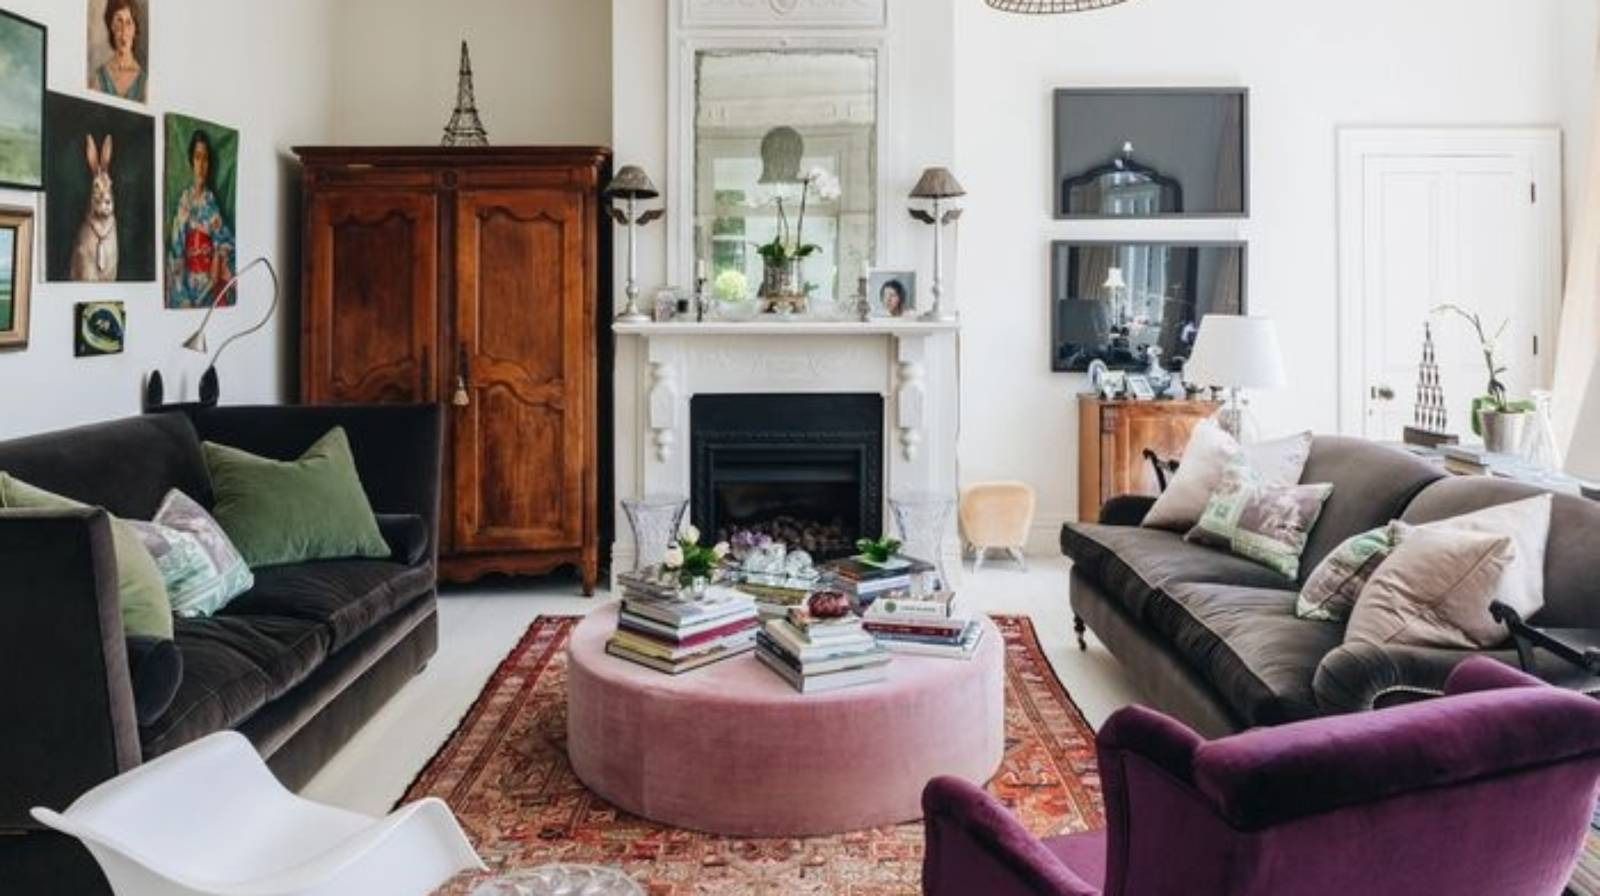 Honouring the Kiwi villa without the cliches